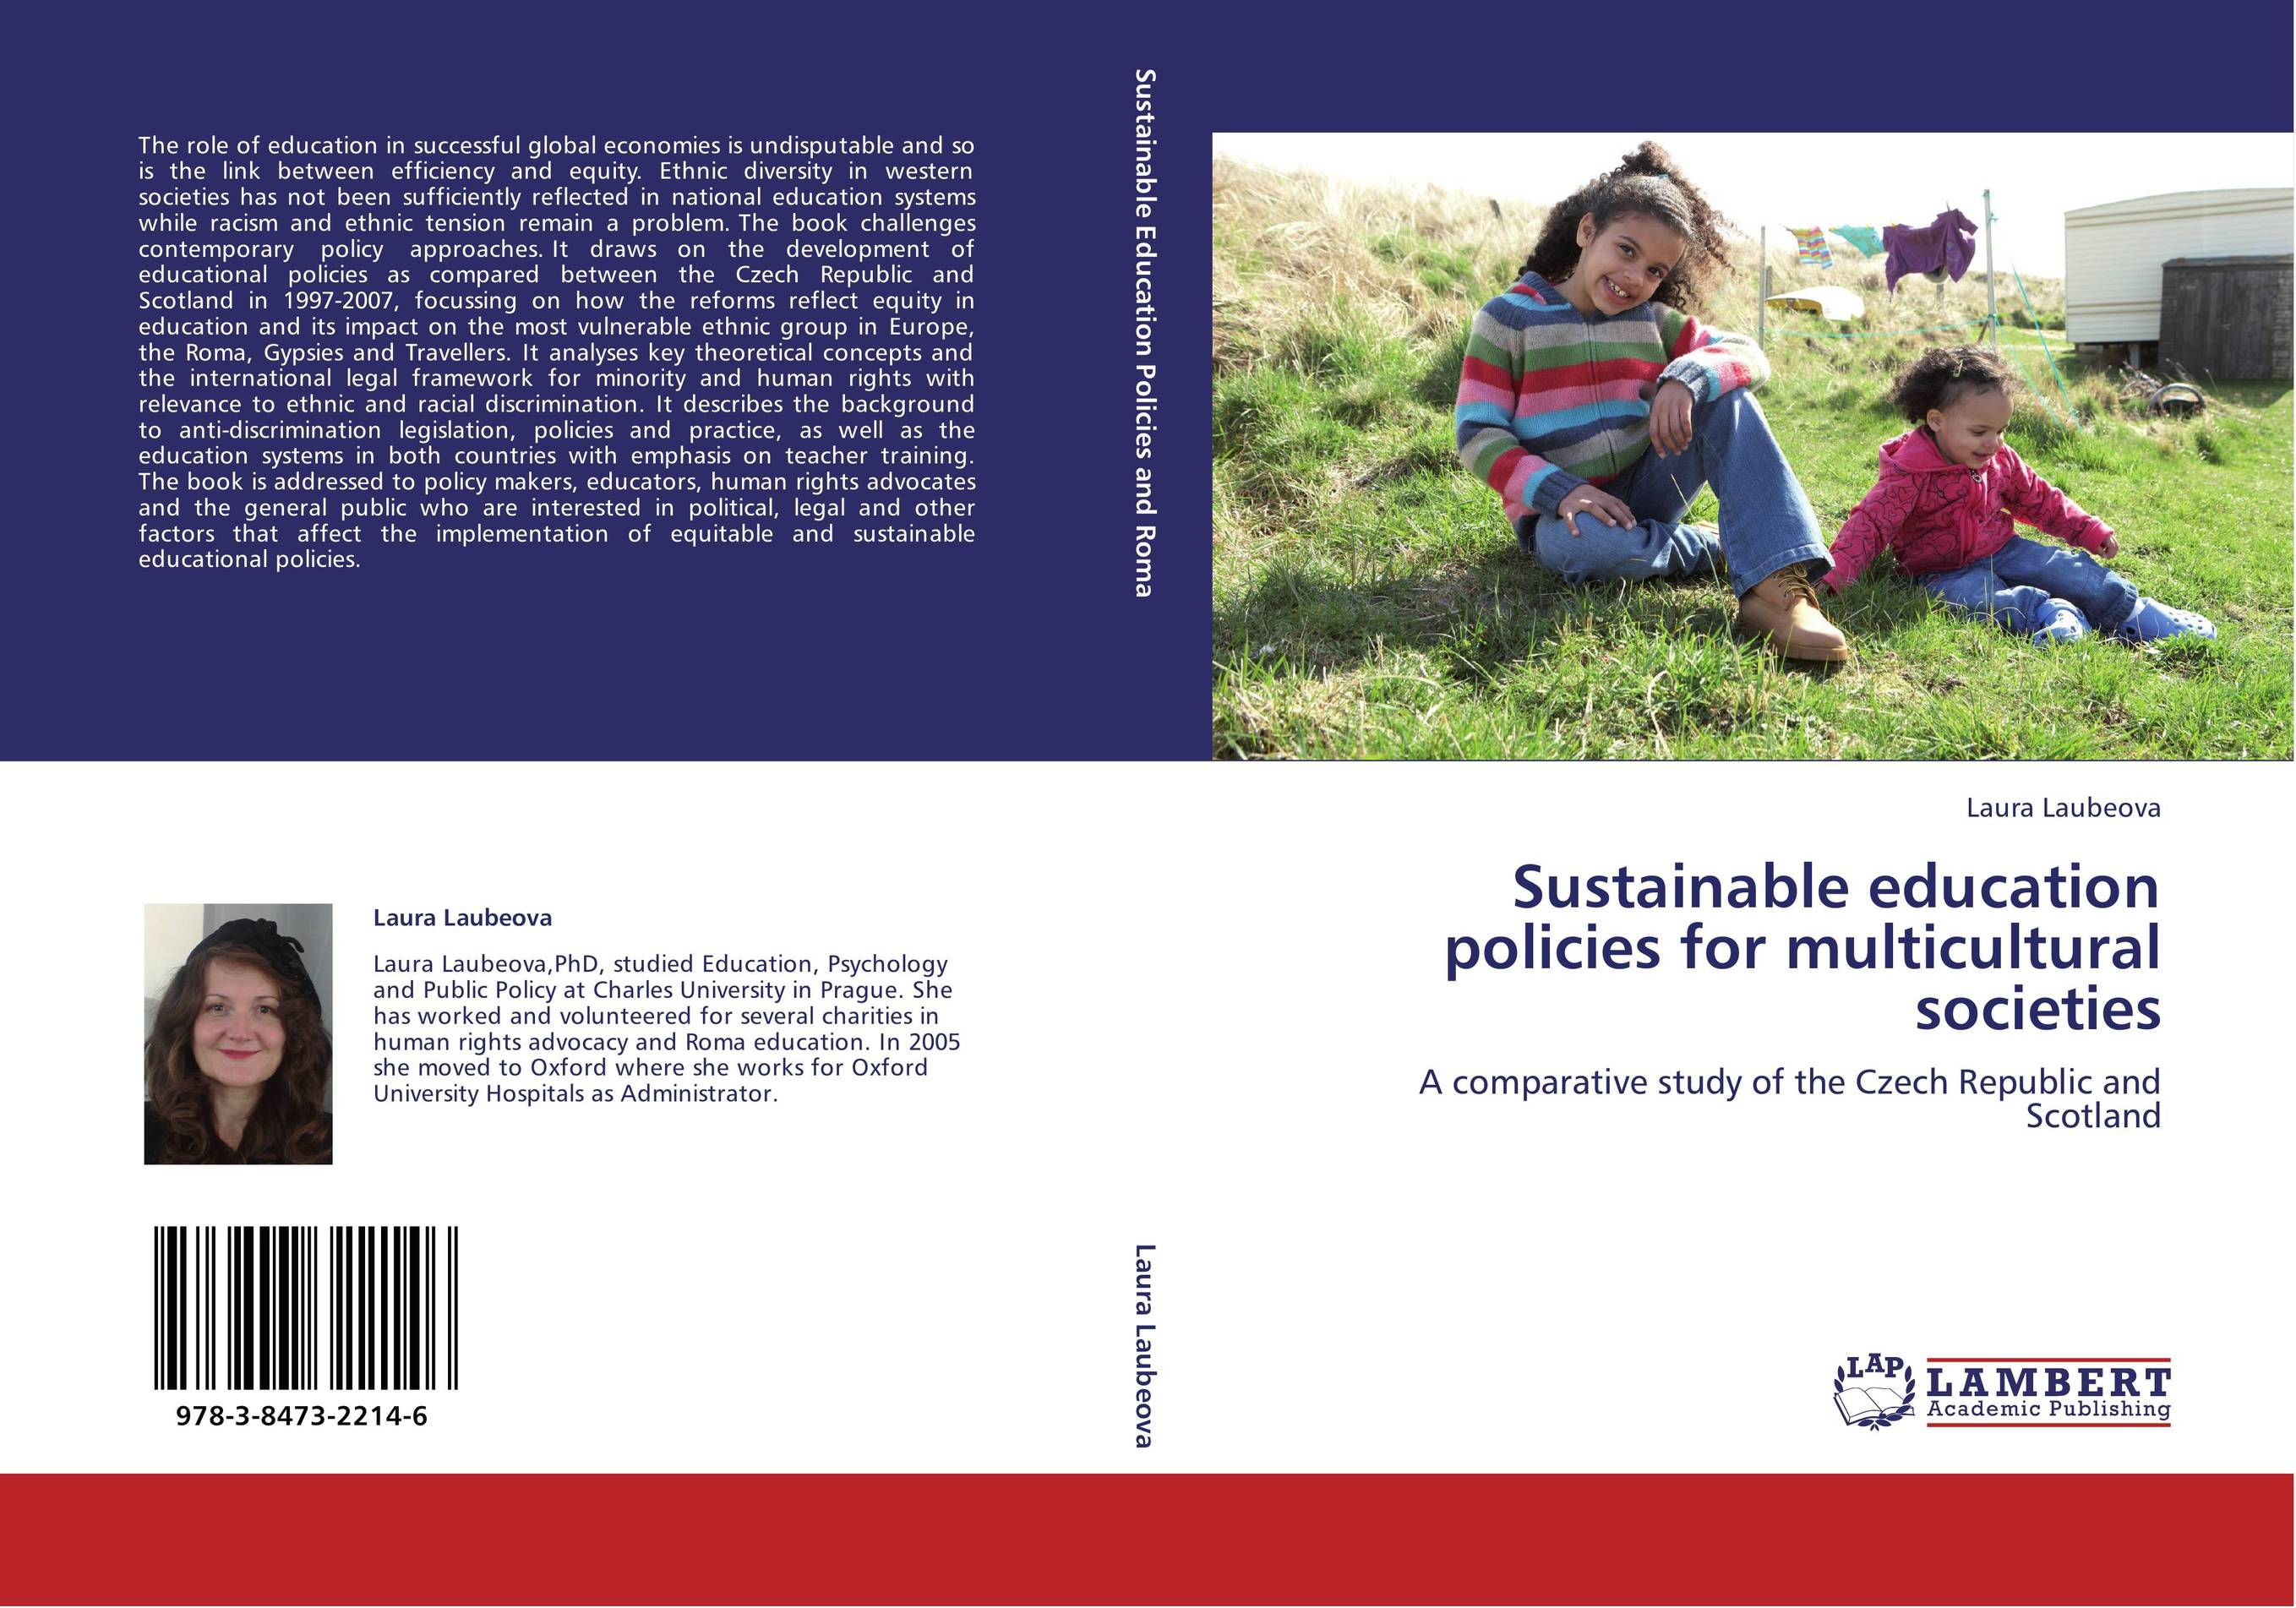 compare and contrast sustainable education policy Policies have the potential of being environmentally benign over the long run (at high incomes), but they are also capable of significant environmental damage.